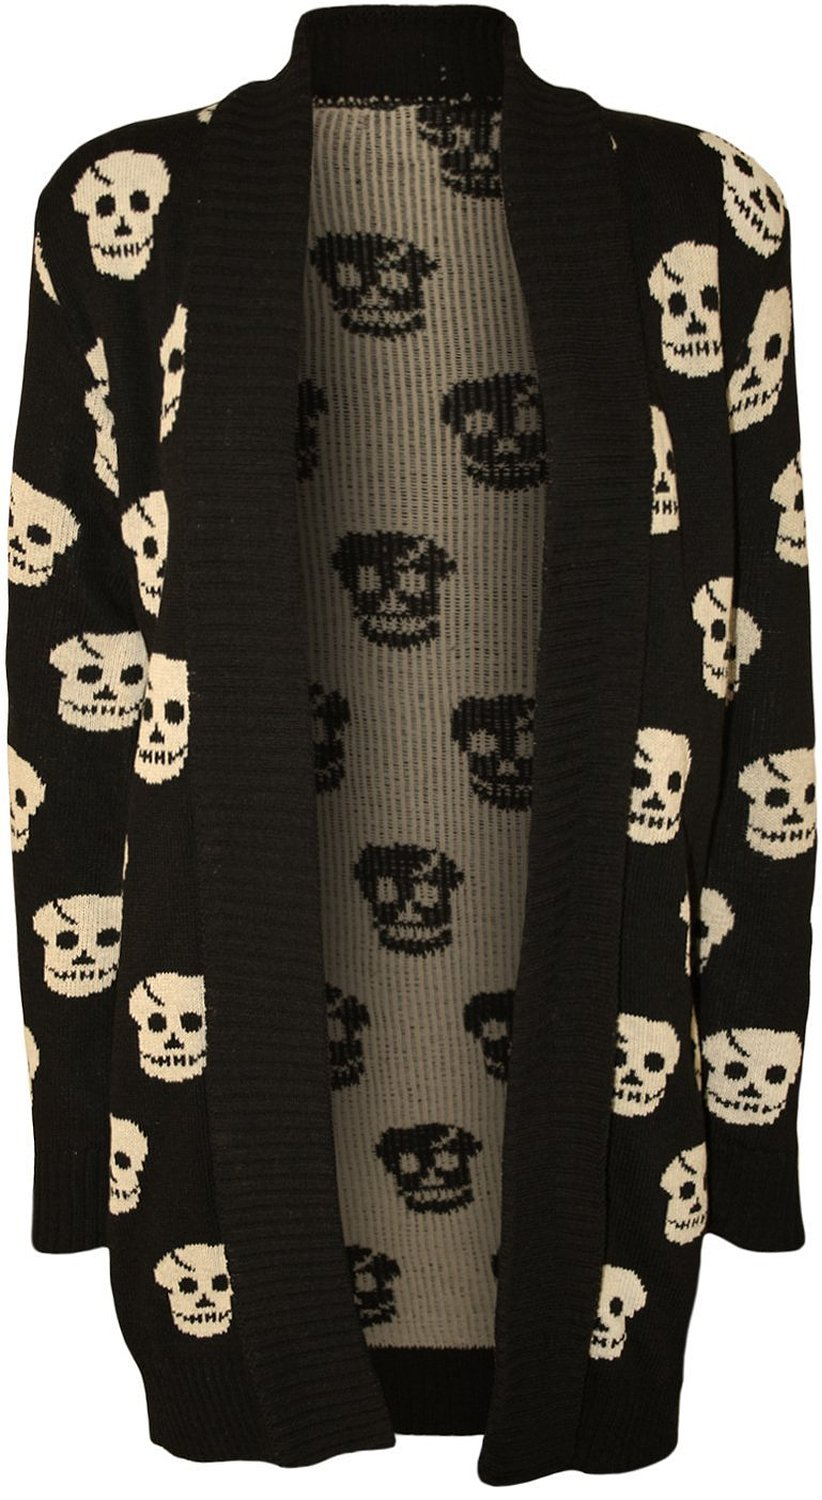 Forever Women's Skull Print Knitted Open Cardigan at Amazon Women's Clothing store: